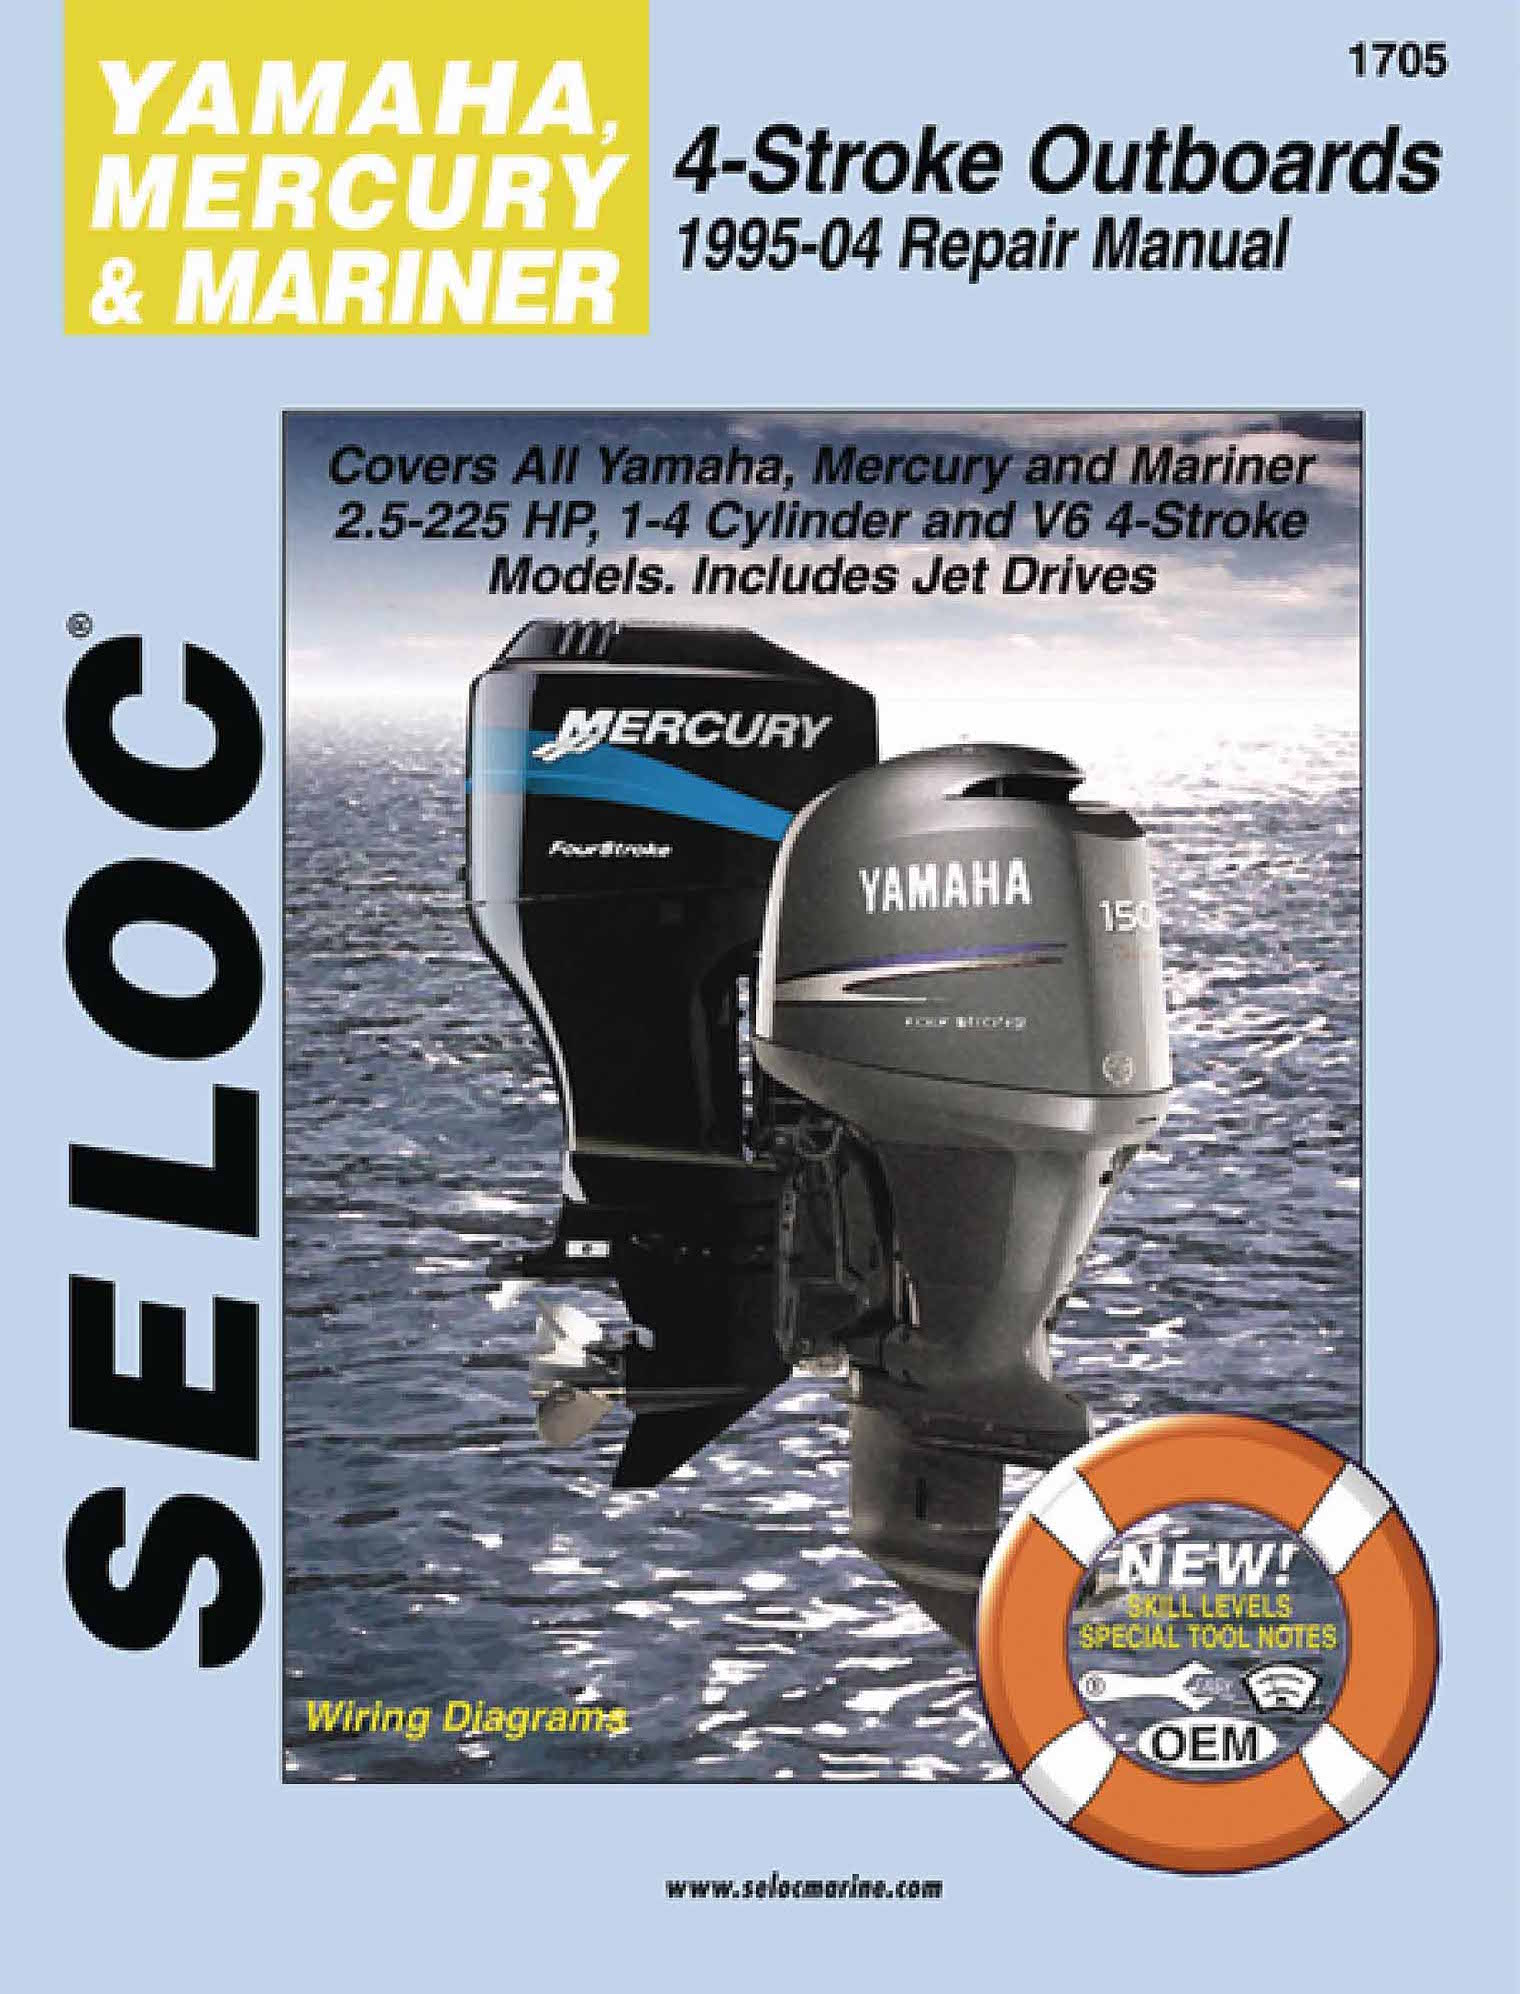 Seloc Marine Repair Manual 1705 Yamaha Mercury Mariner 25 225 Outboard Spark Plug Wiring Diagram Hp Outboards 1995 2004